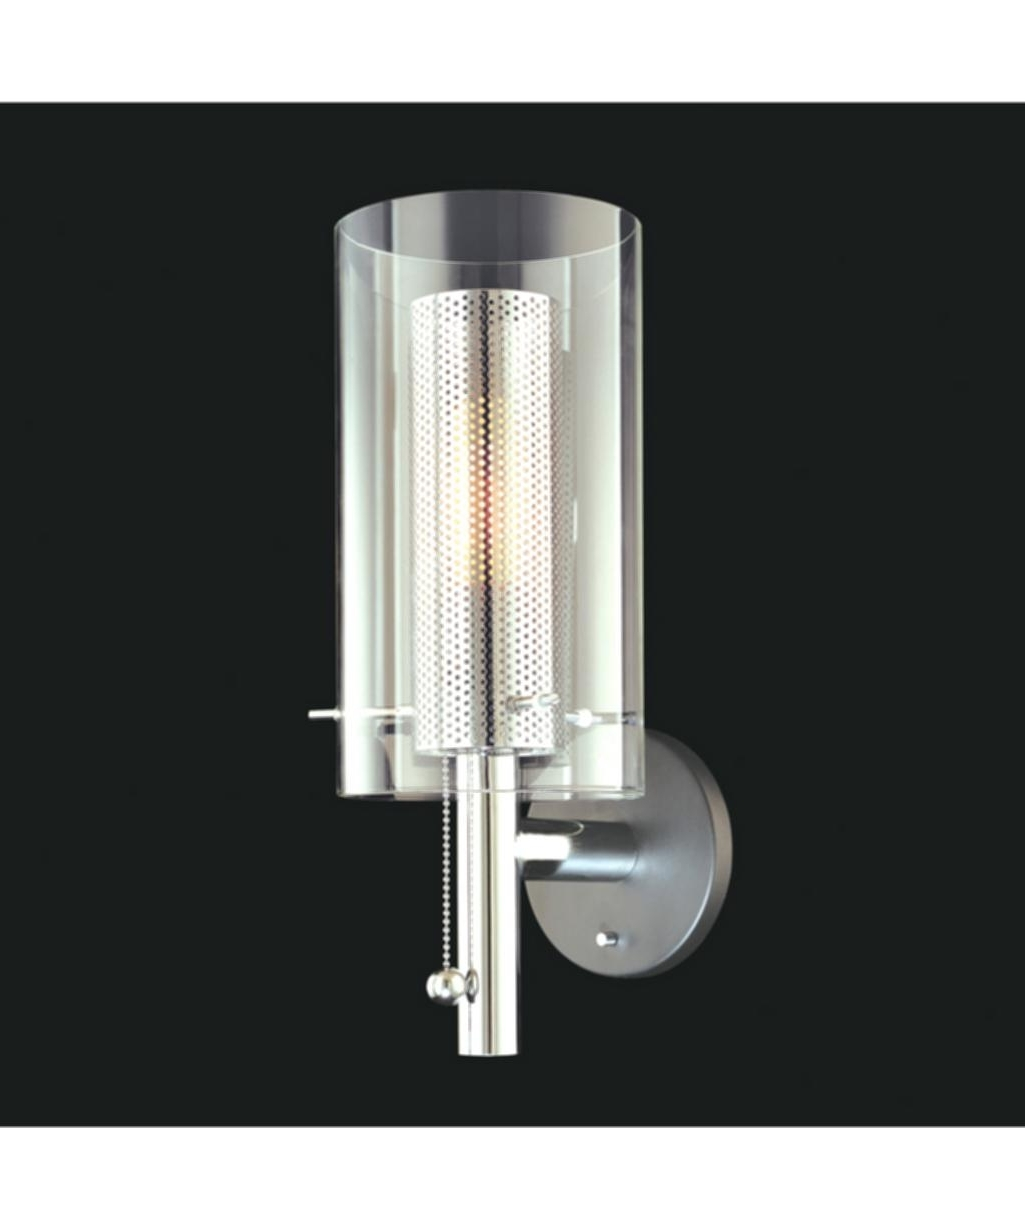 Best And Newest Chandelier Wall Light Bathroom Modern Bathroom Wall Sconces Lighting Intended For Bathroom Chandelier Wall Lights (View 14 of 20)